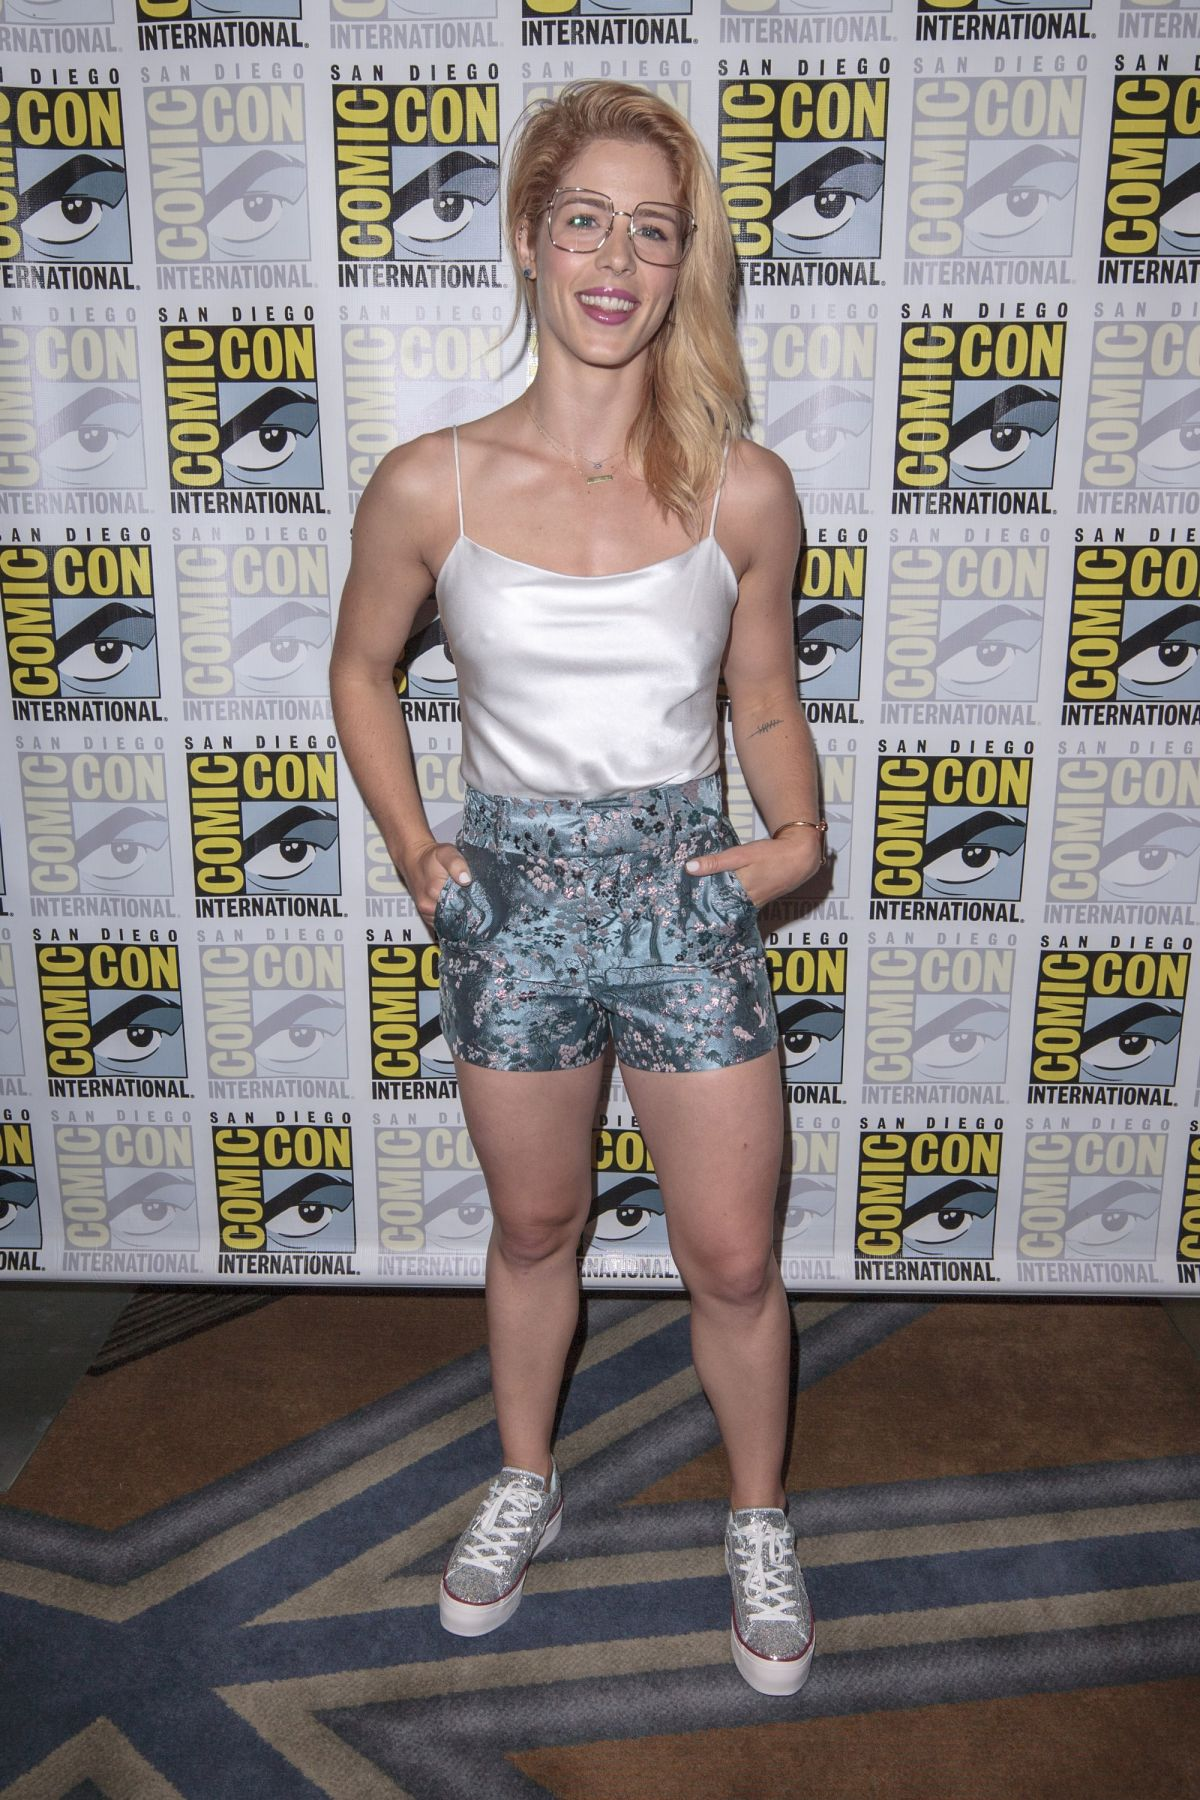 Bett Comic Emily Bett Rickards At Comic Con 2018 In San Diego 07 21 2018